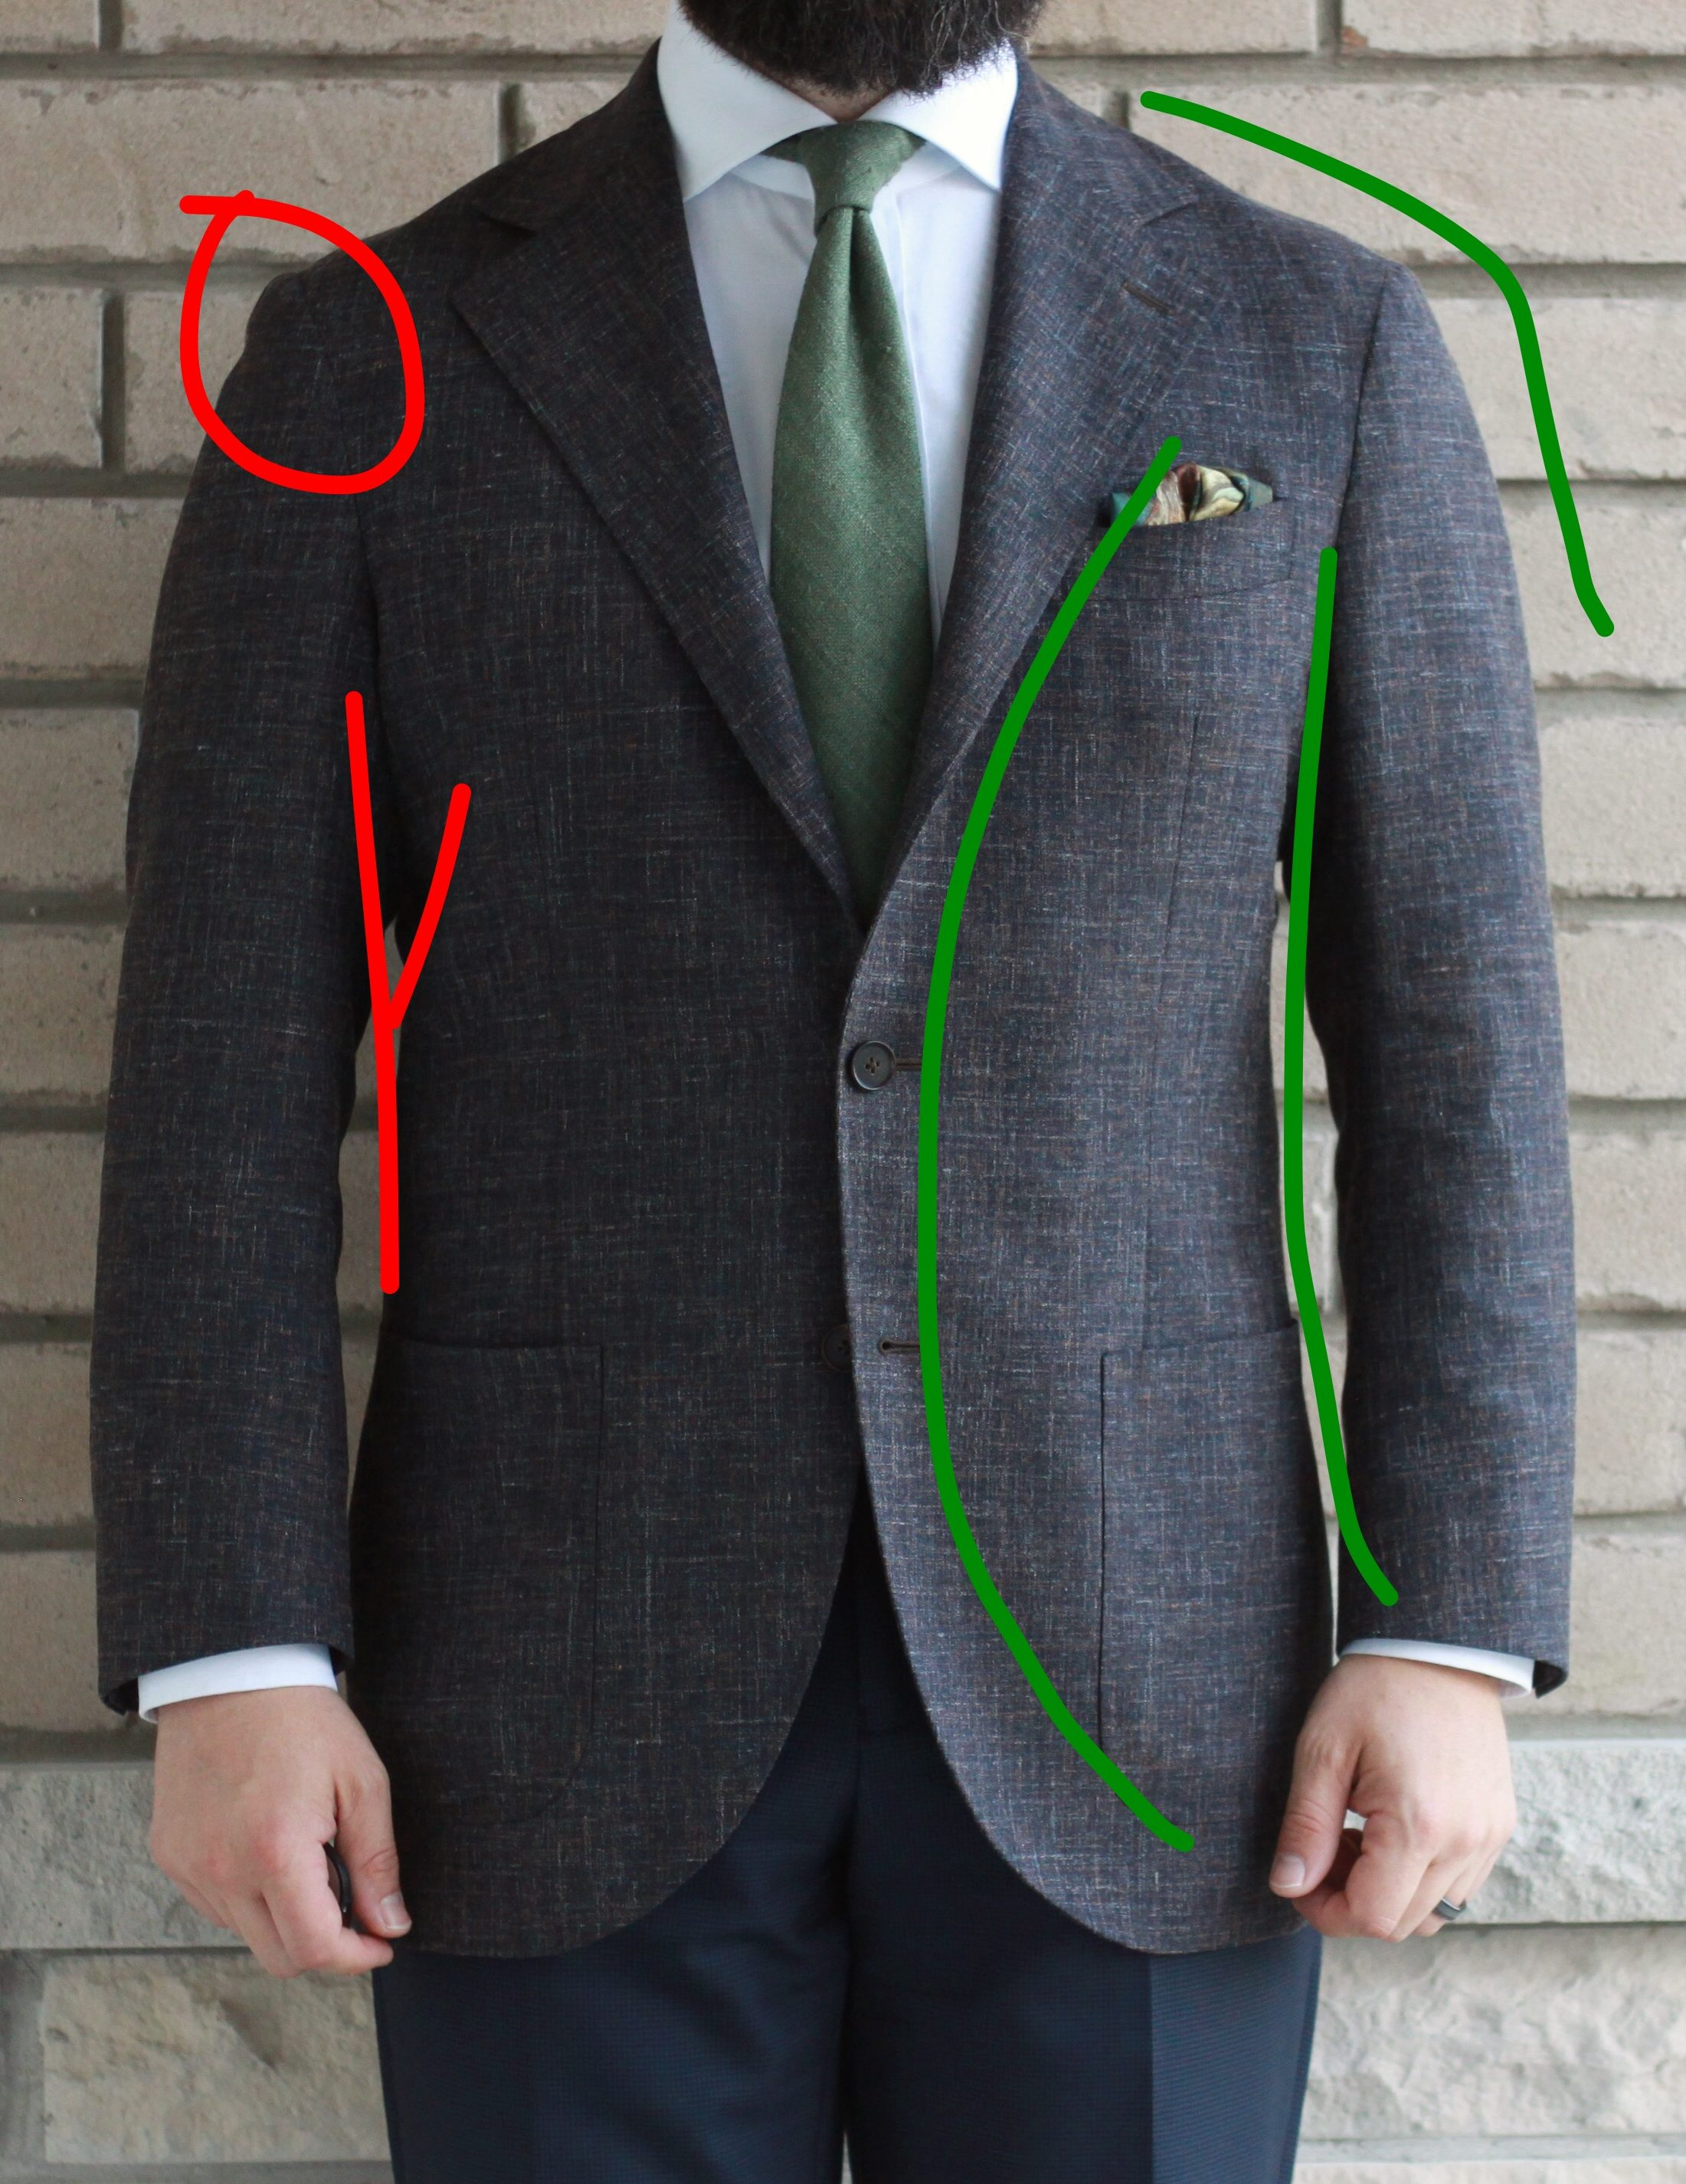 spier & mackay neapolitan, fit analysis, review, sport coat, odd jacket, spring/summer